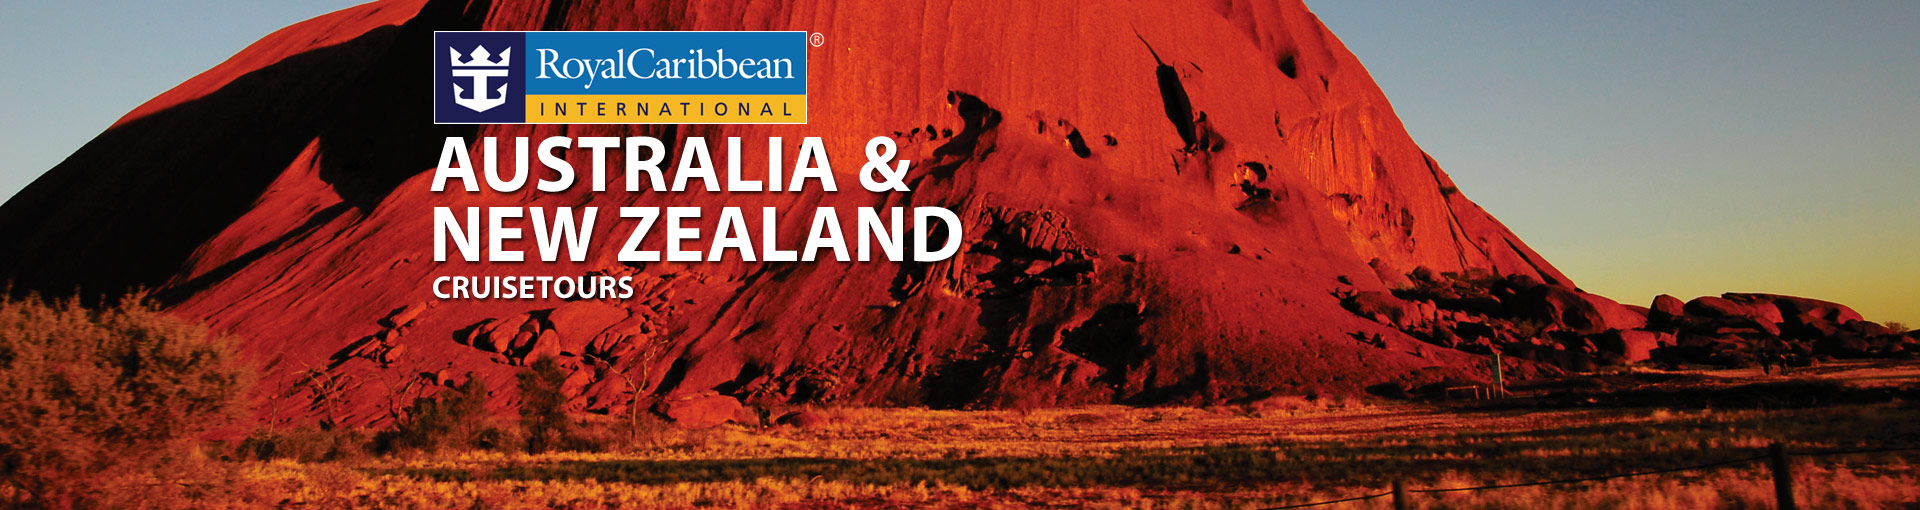 Royal Caribbean Australia New Zealand Cruisetours